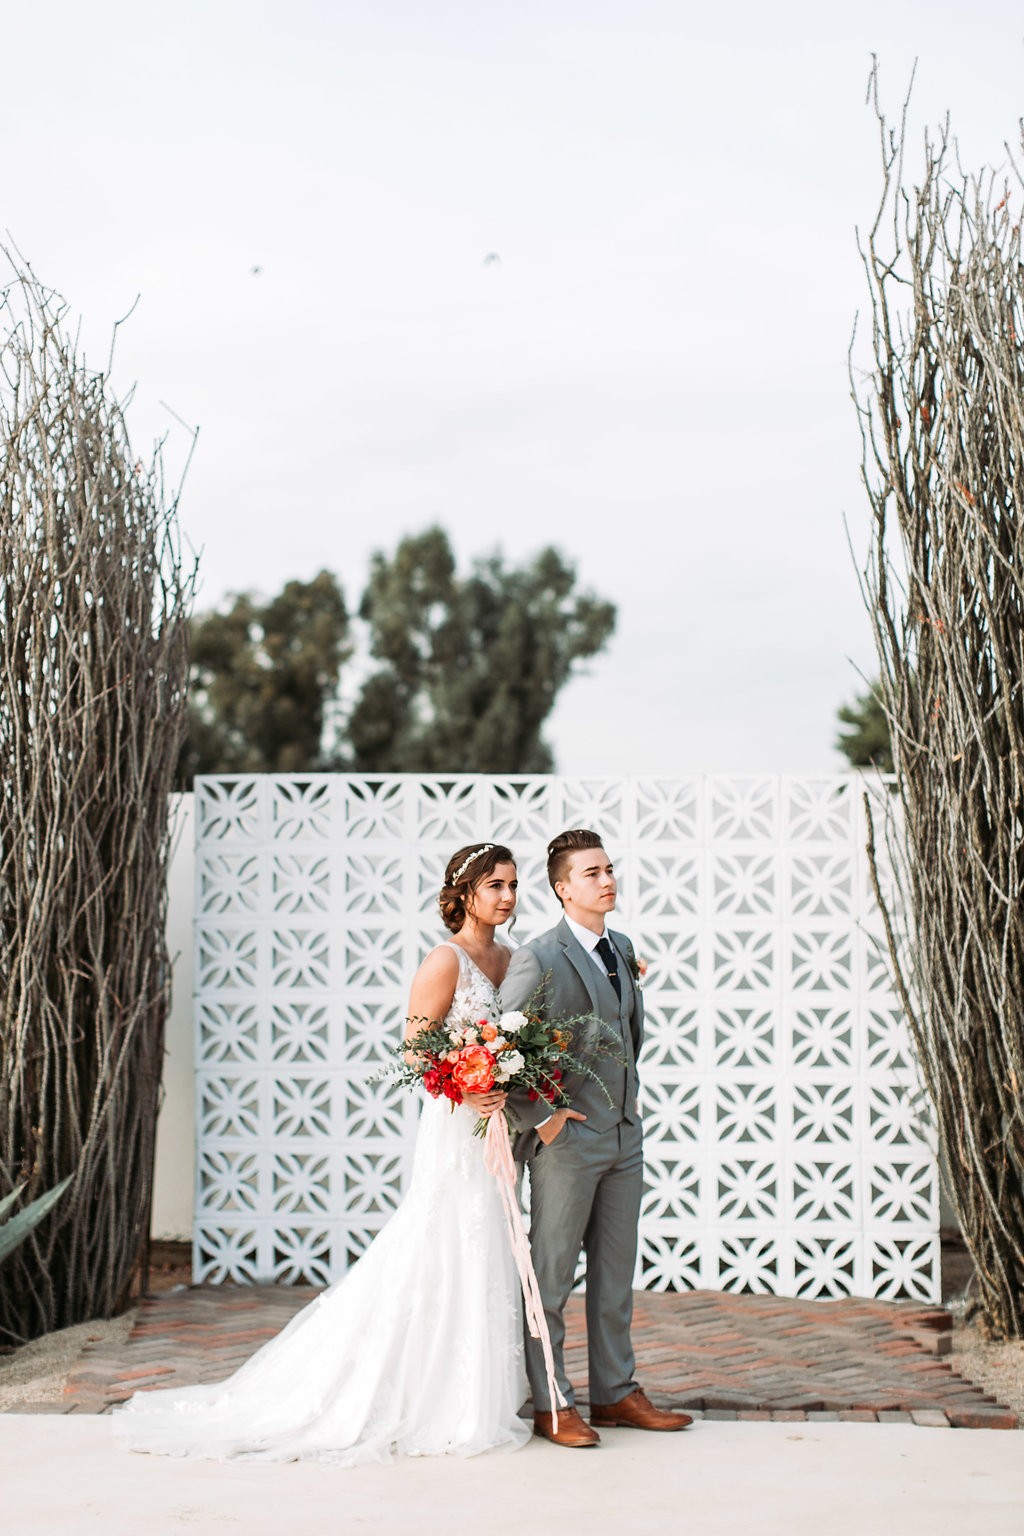 Tercero by Aldea Weddings - Glendale, Arizona Wedding Venue -- Wedding Inspiration - The Overwhelmed Bride